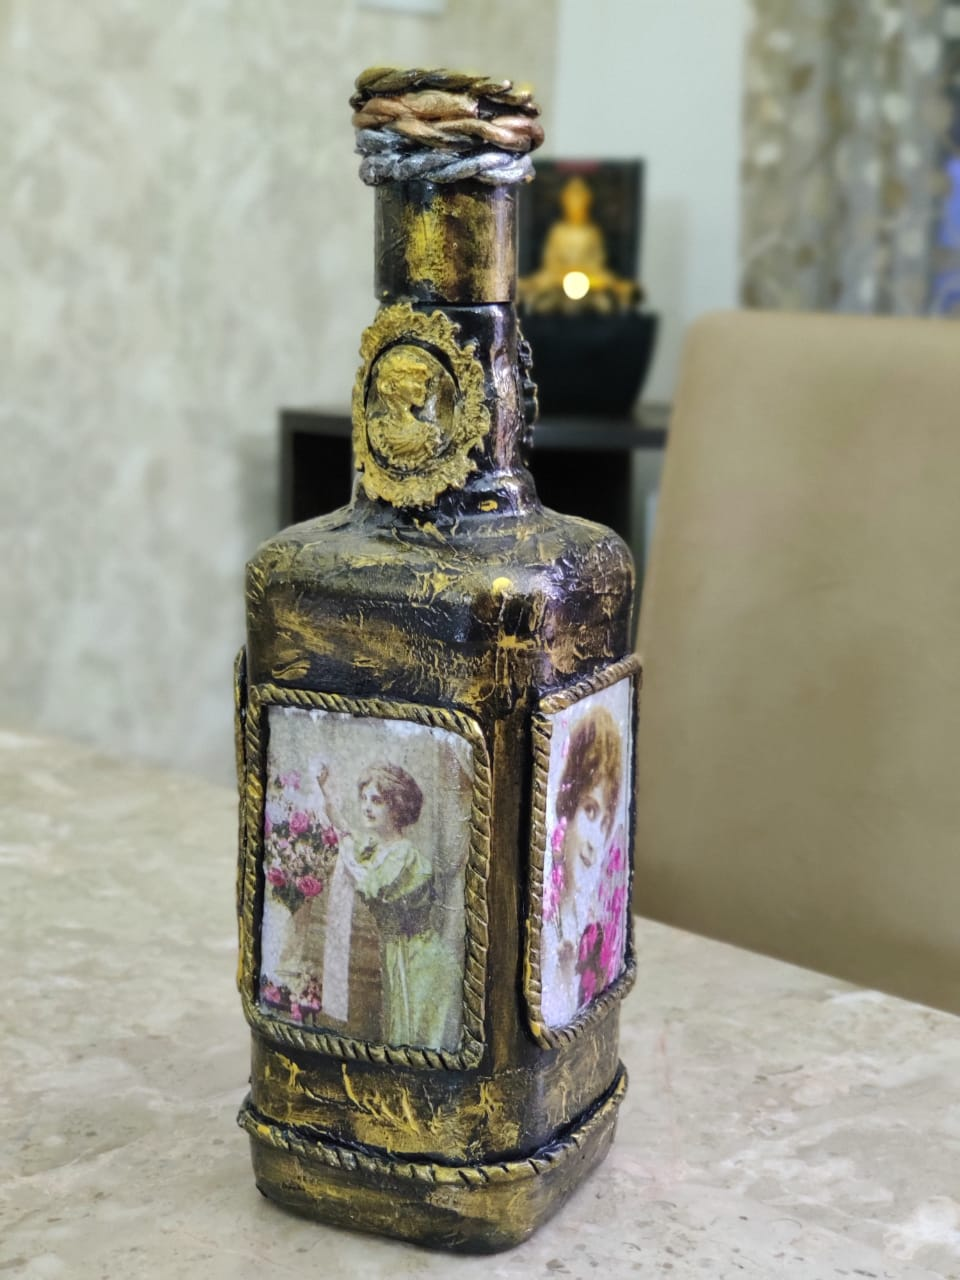 Vintage Bottle art — Paint my Soul